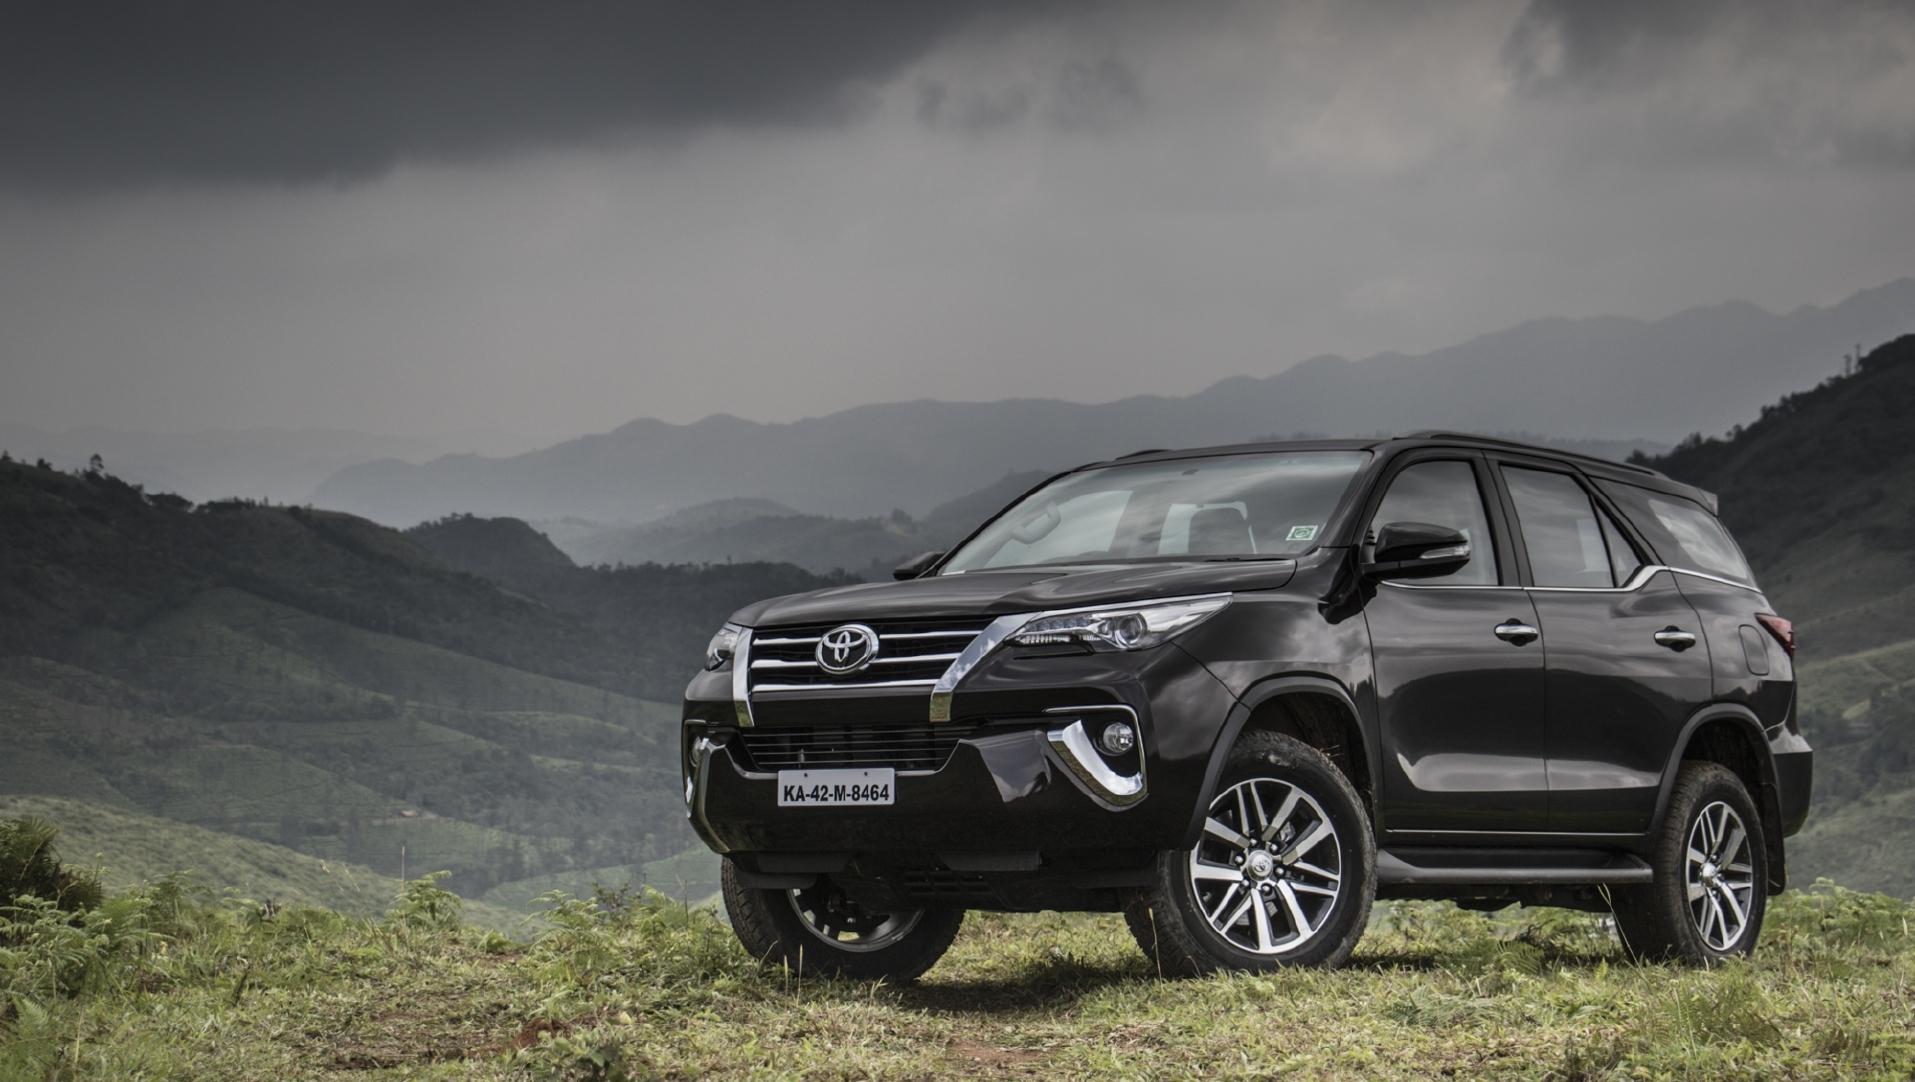 Image of Toyota Fortuner